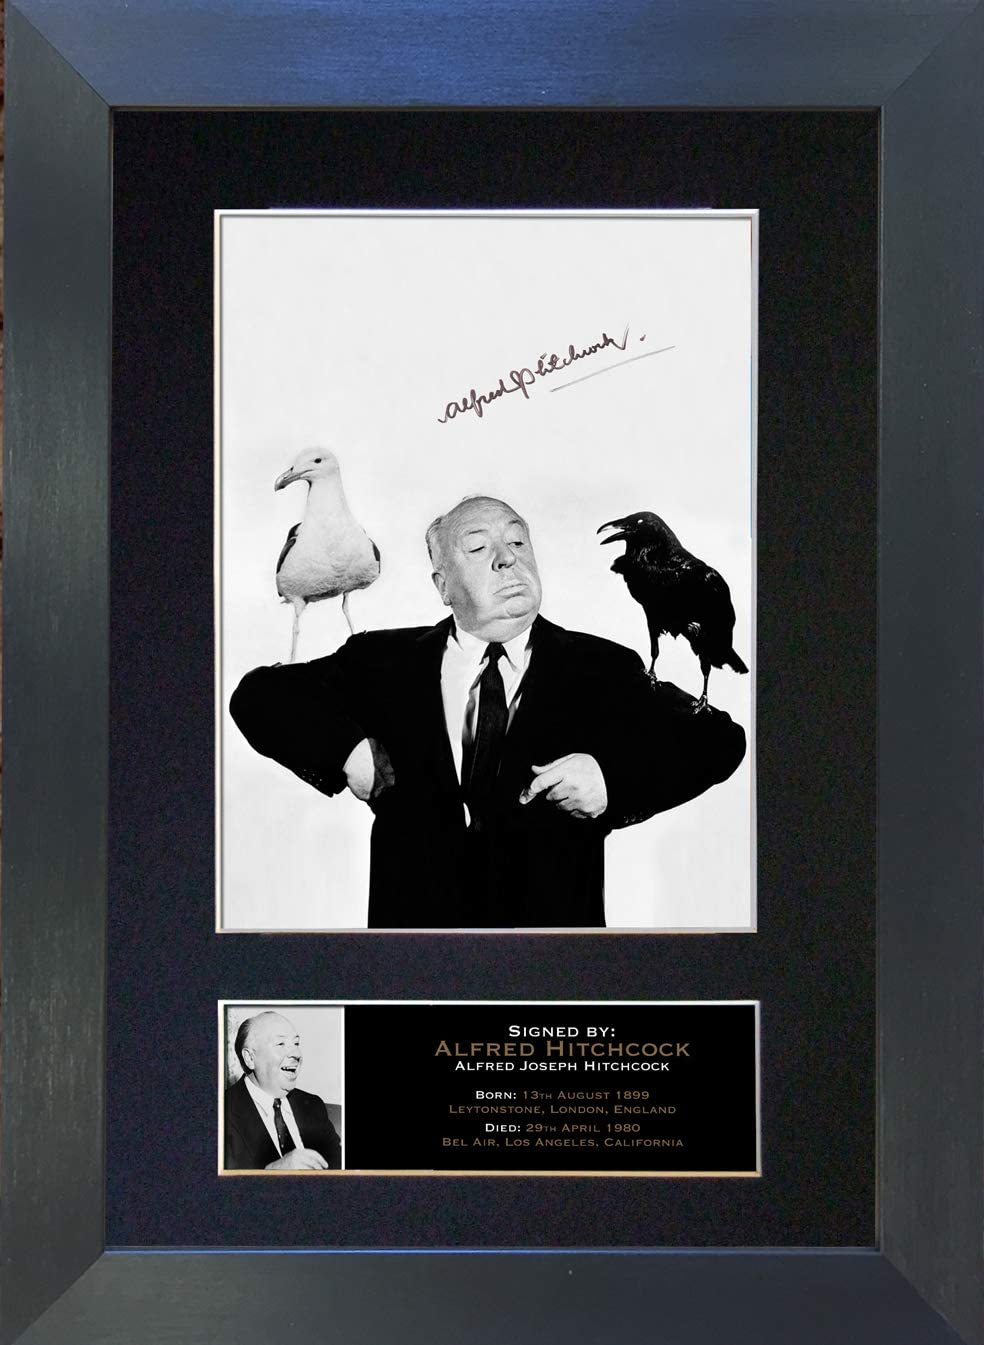 12 x 8 inches Cadre Argent 297 x 210 mm The Autograph Collector Alfred Hitchcock Photo Photo d/édicac/ée A4 Rare Perfect Birthday #174